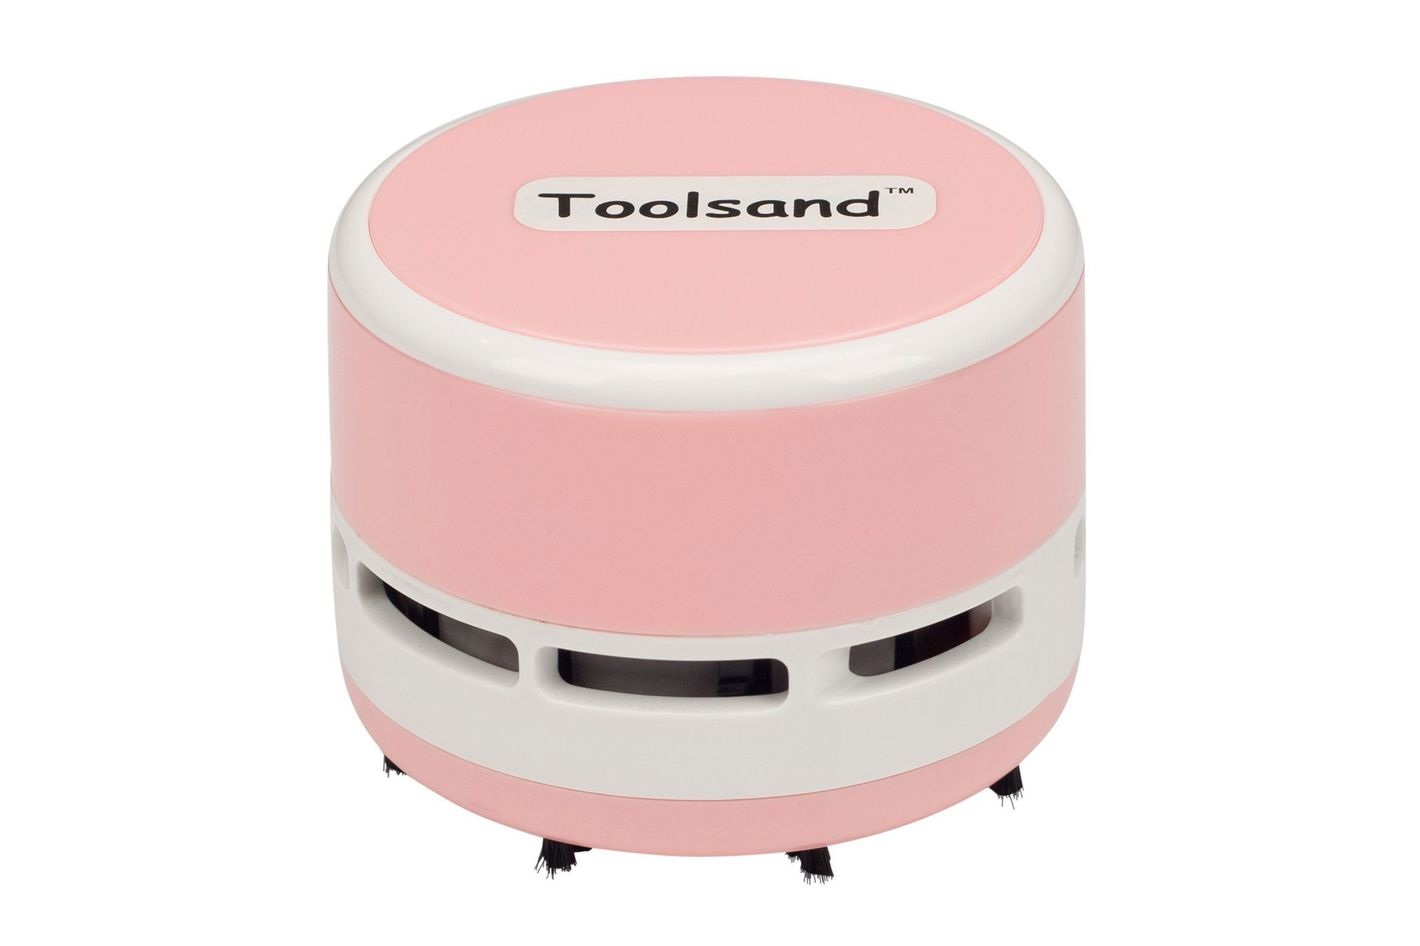 Toolsand Mini Desktop Portable Handheld Cordless Tabletop Crumb Sweeper Vacuum Cleaner Battery Operated